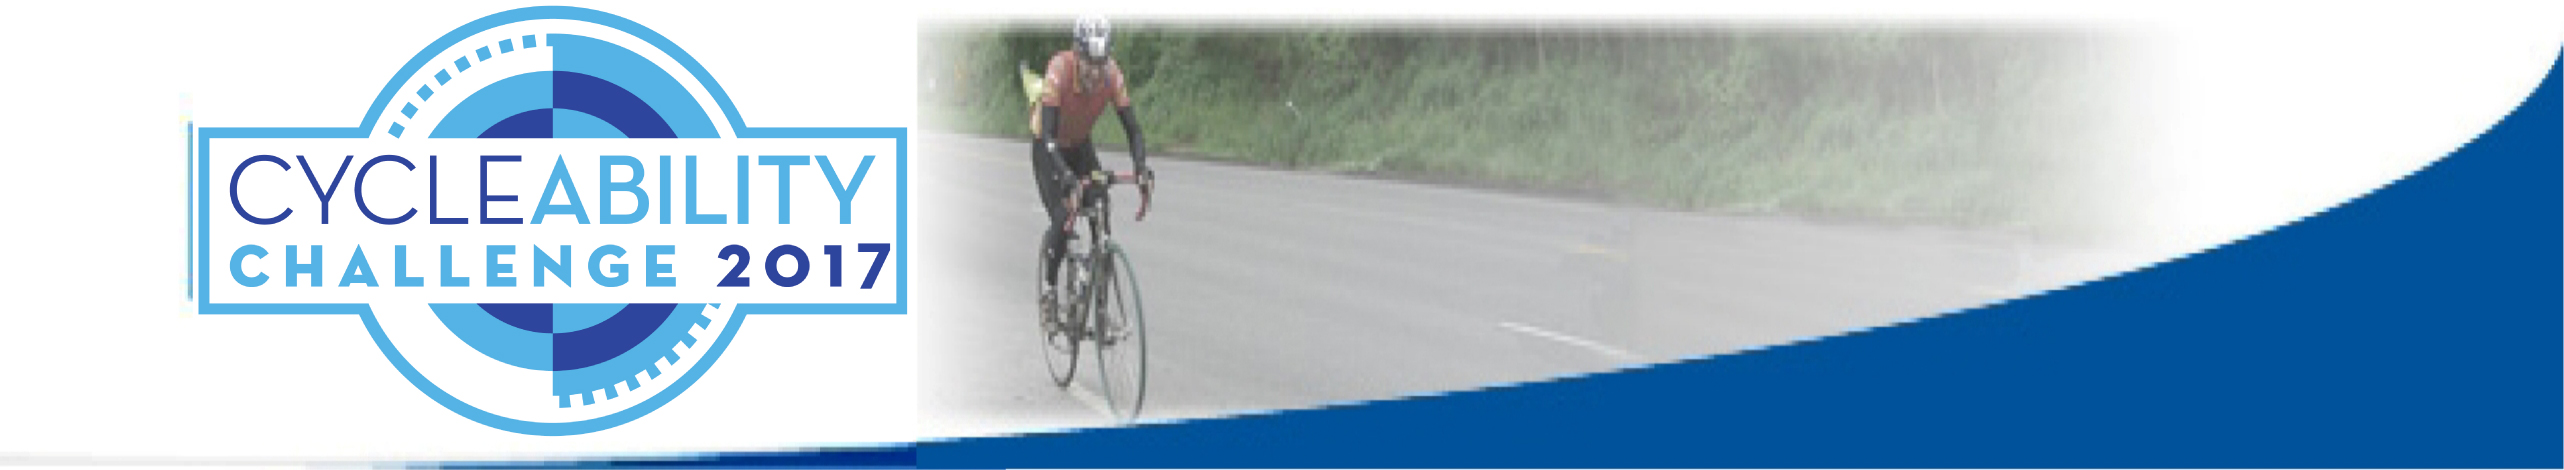 CycleAbility Challenge, June 2-4, 2017